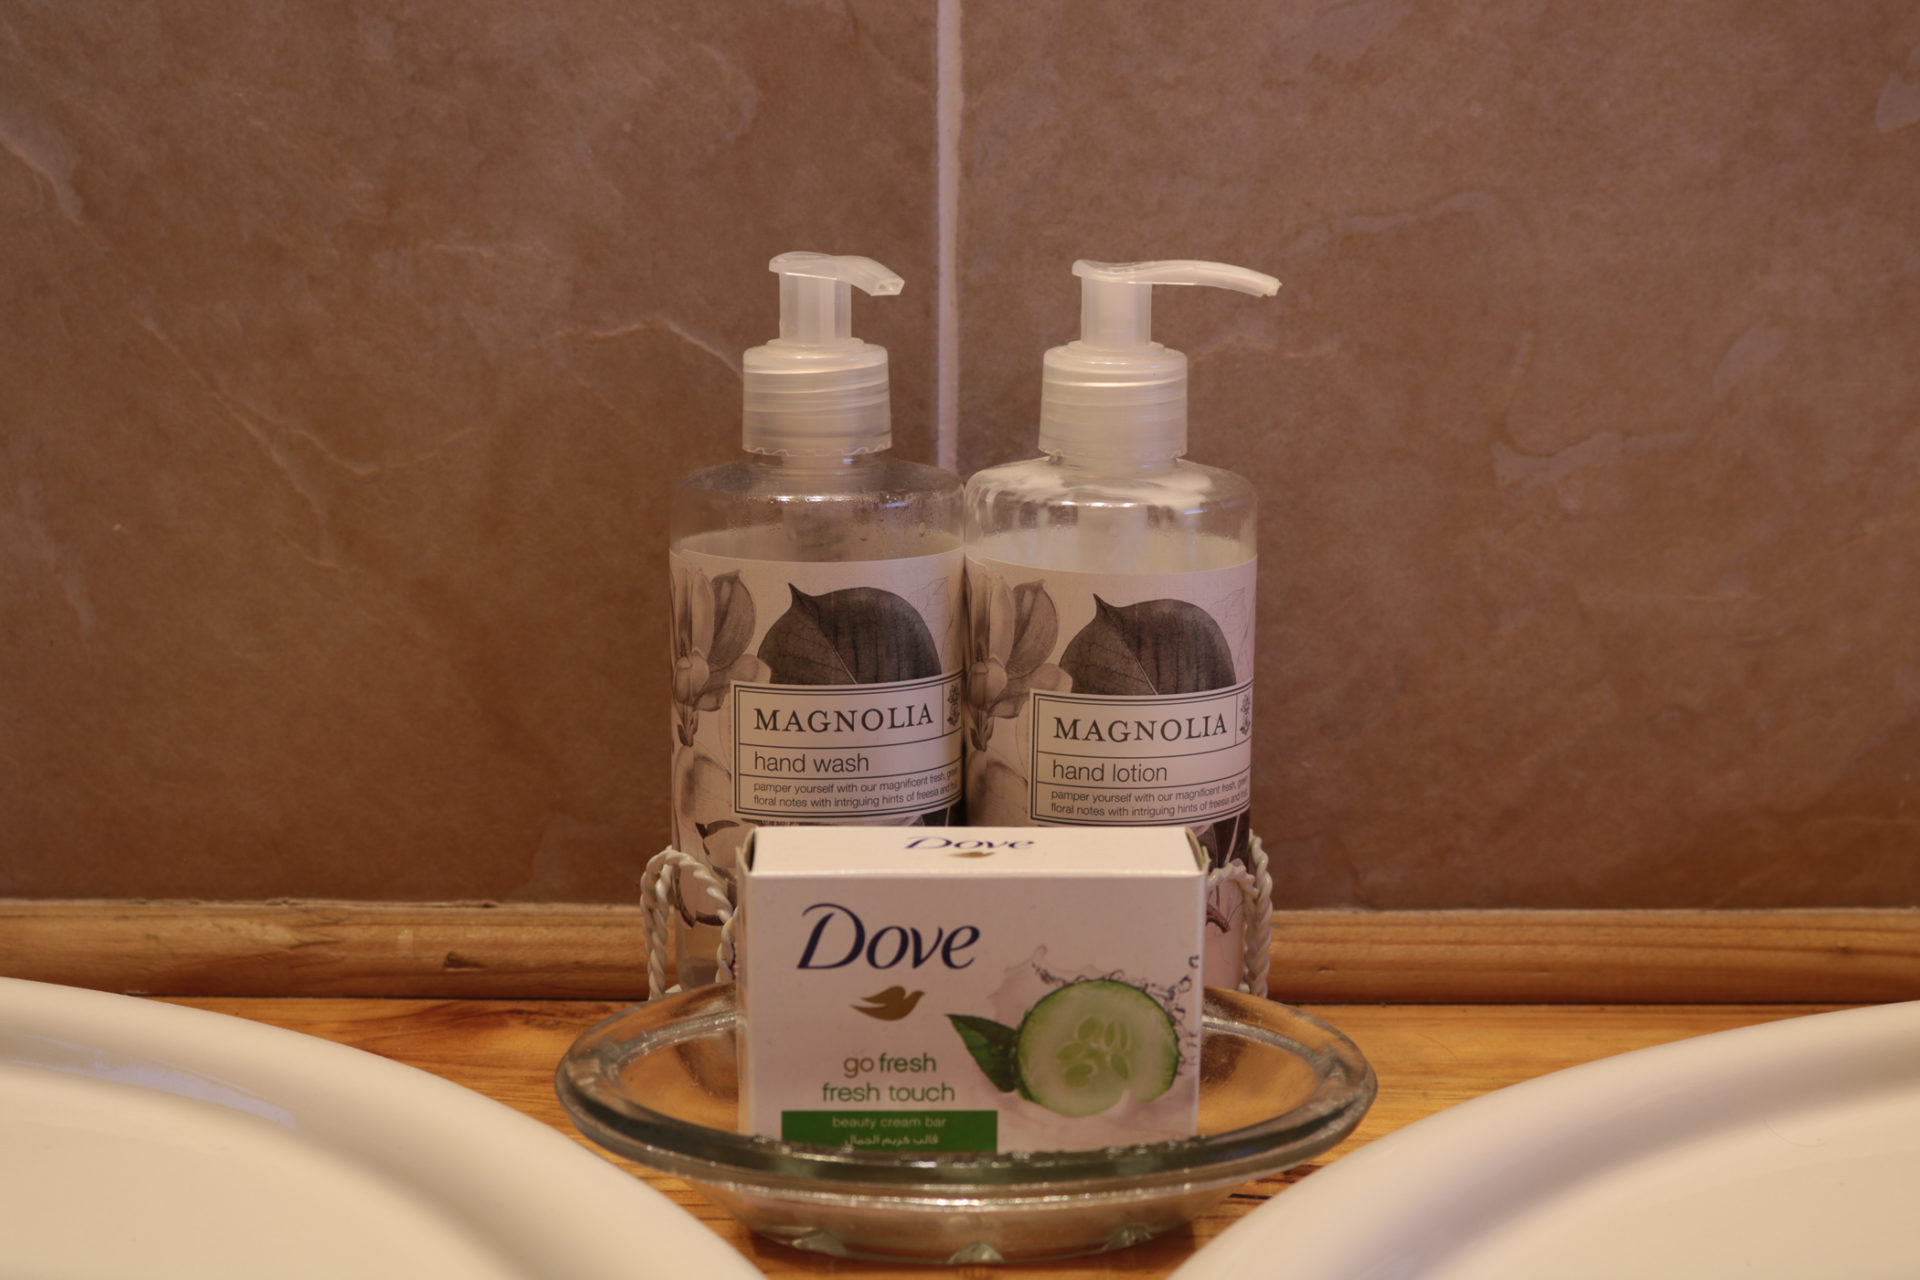 Soap and bathroom details